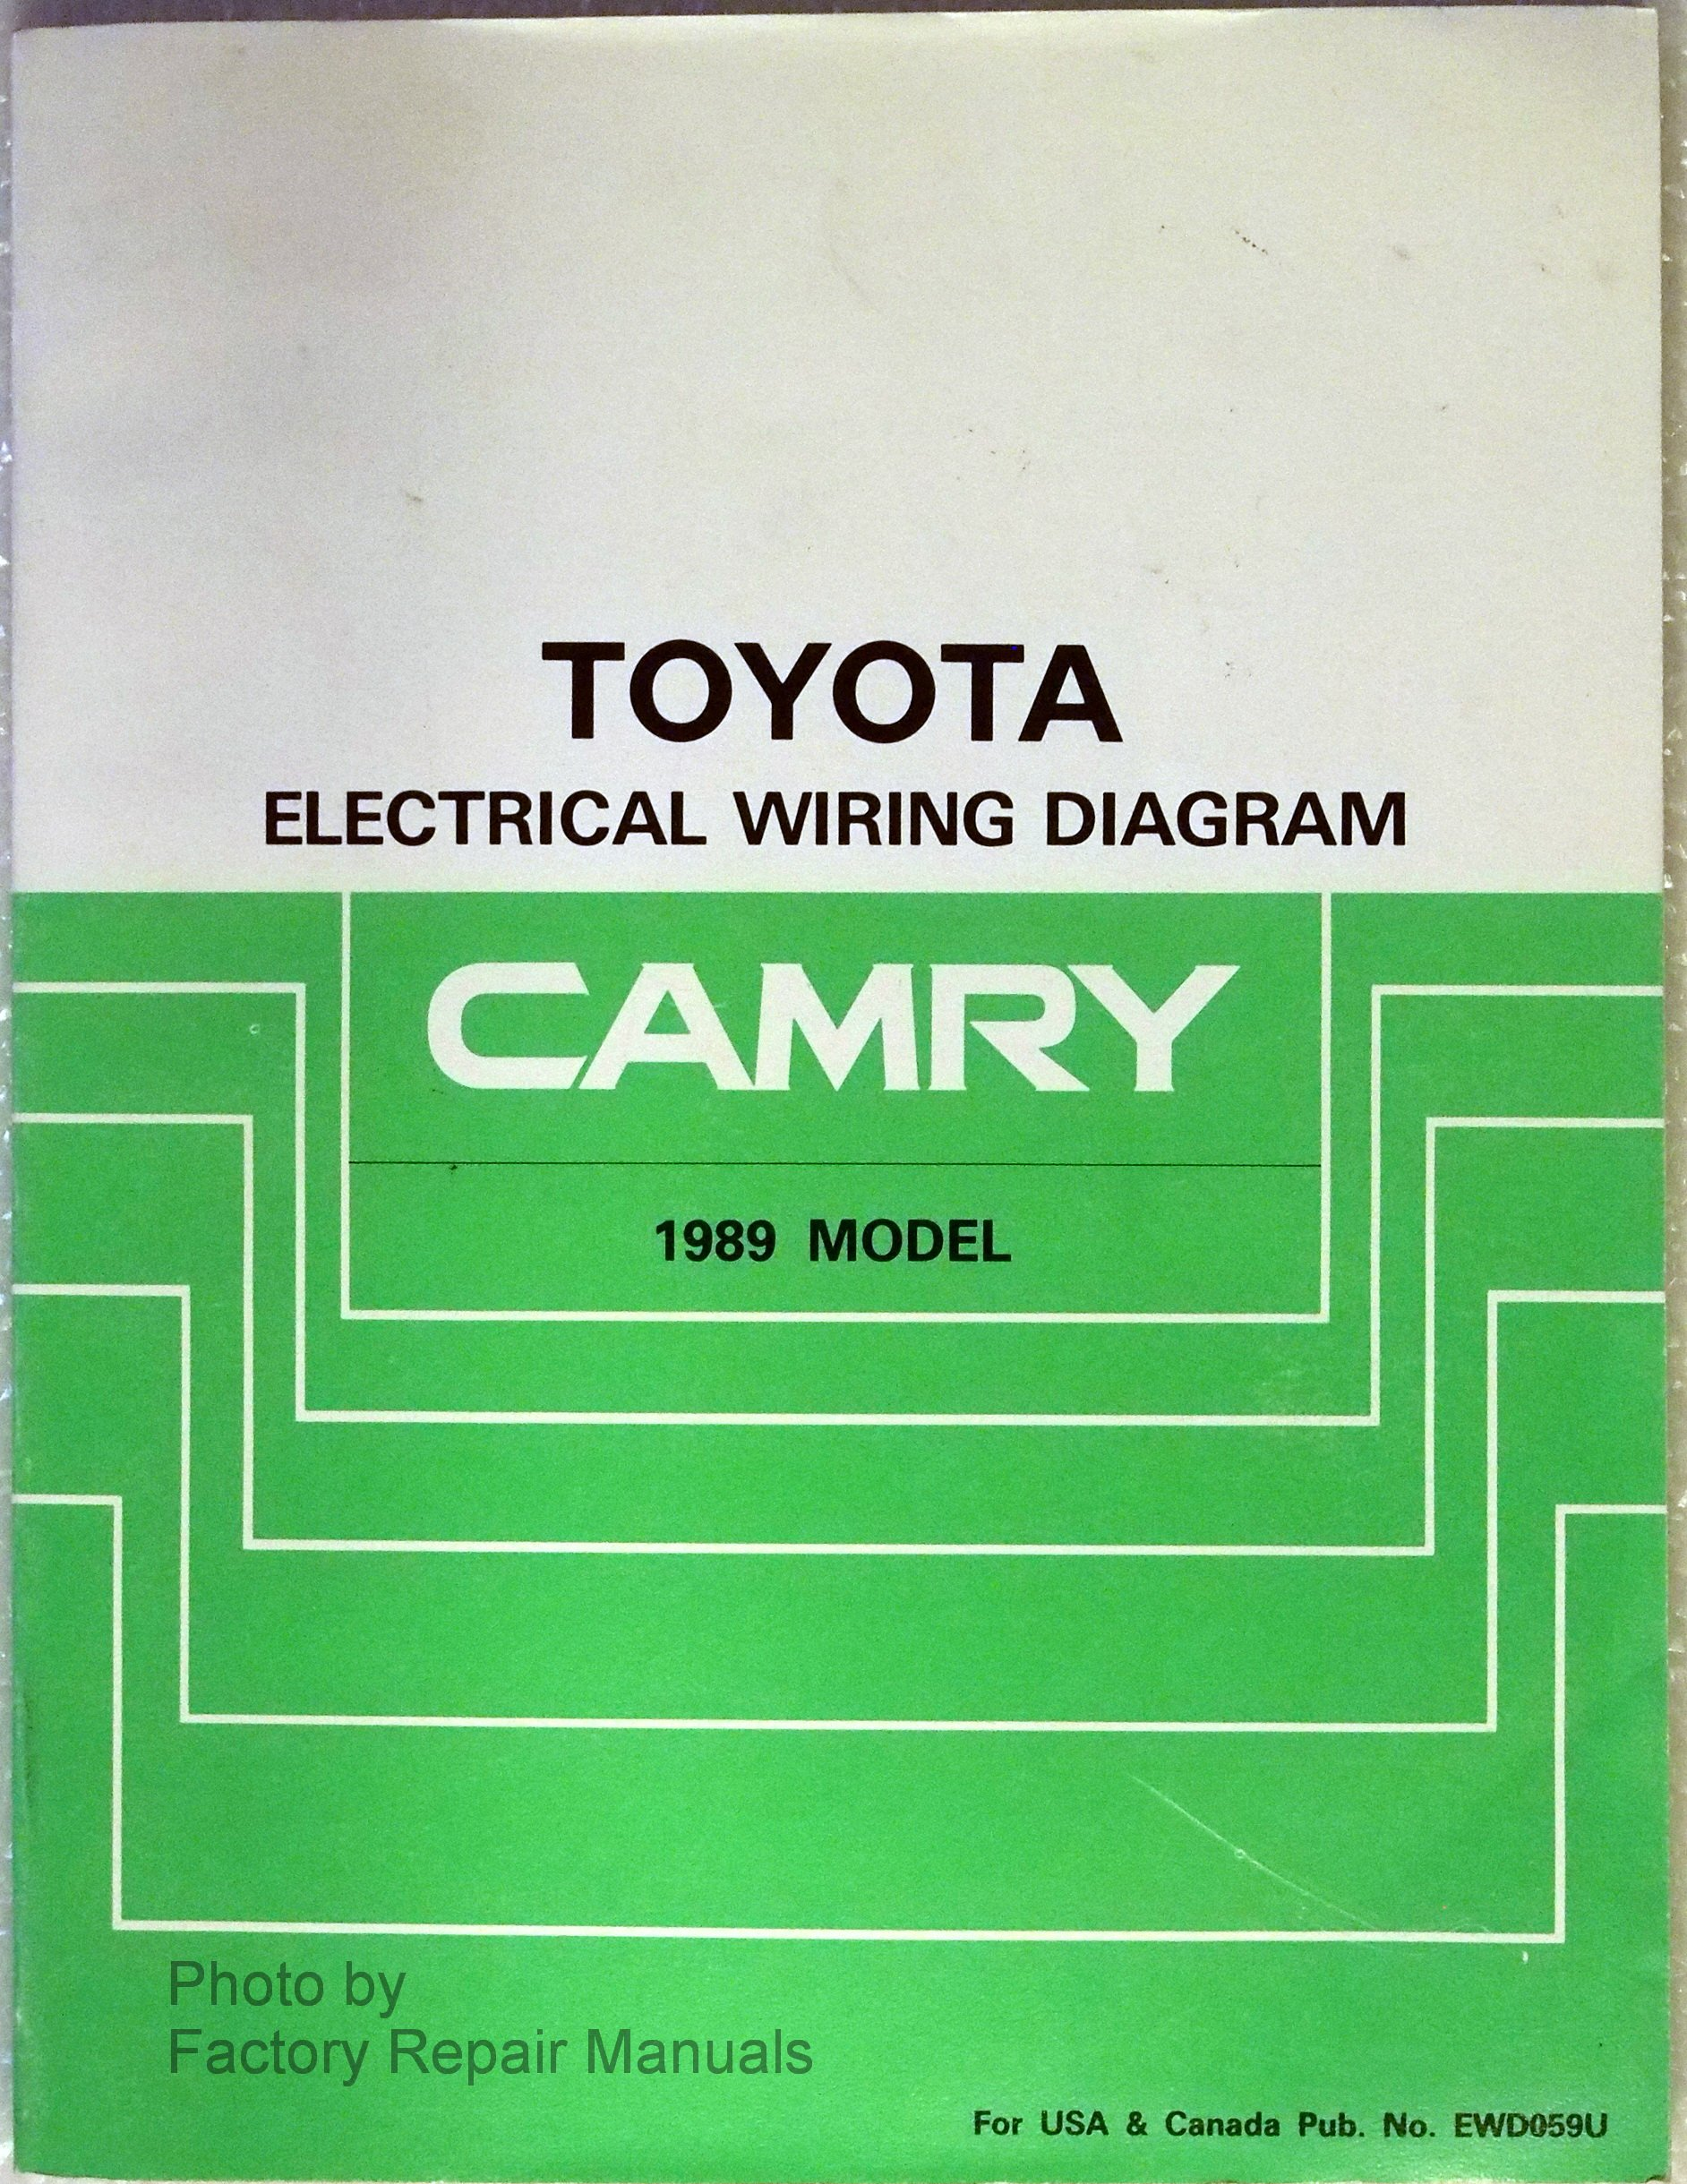 1989 toyota camry electrical wiring diagram manual toyota 1989 toyota camry electrical wiring diagram manual toyota electrical wiring diagram camry 1989 model amazon books asfbconference2016